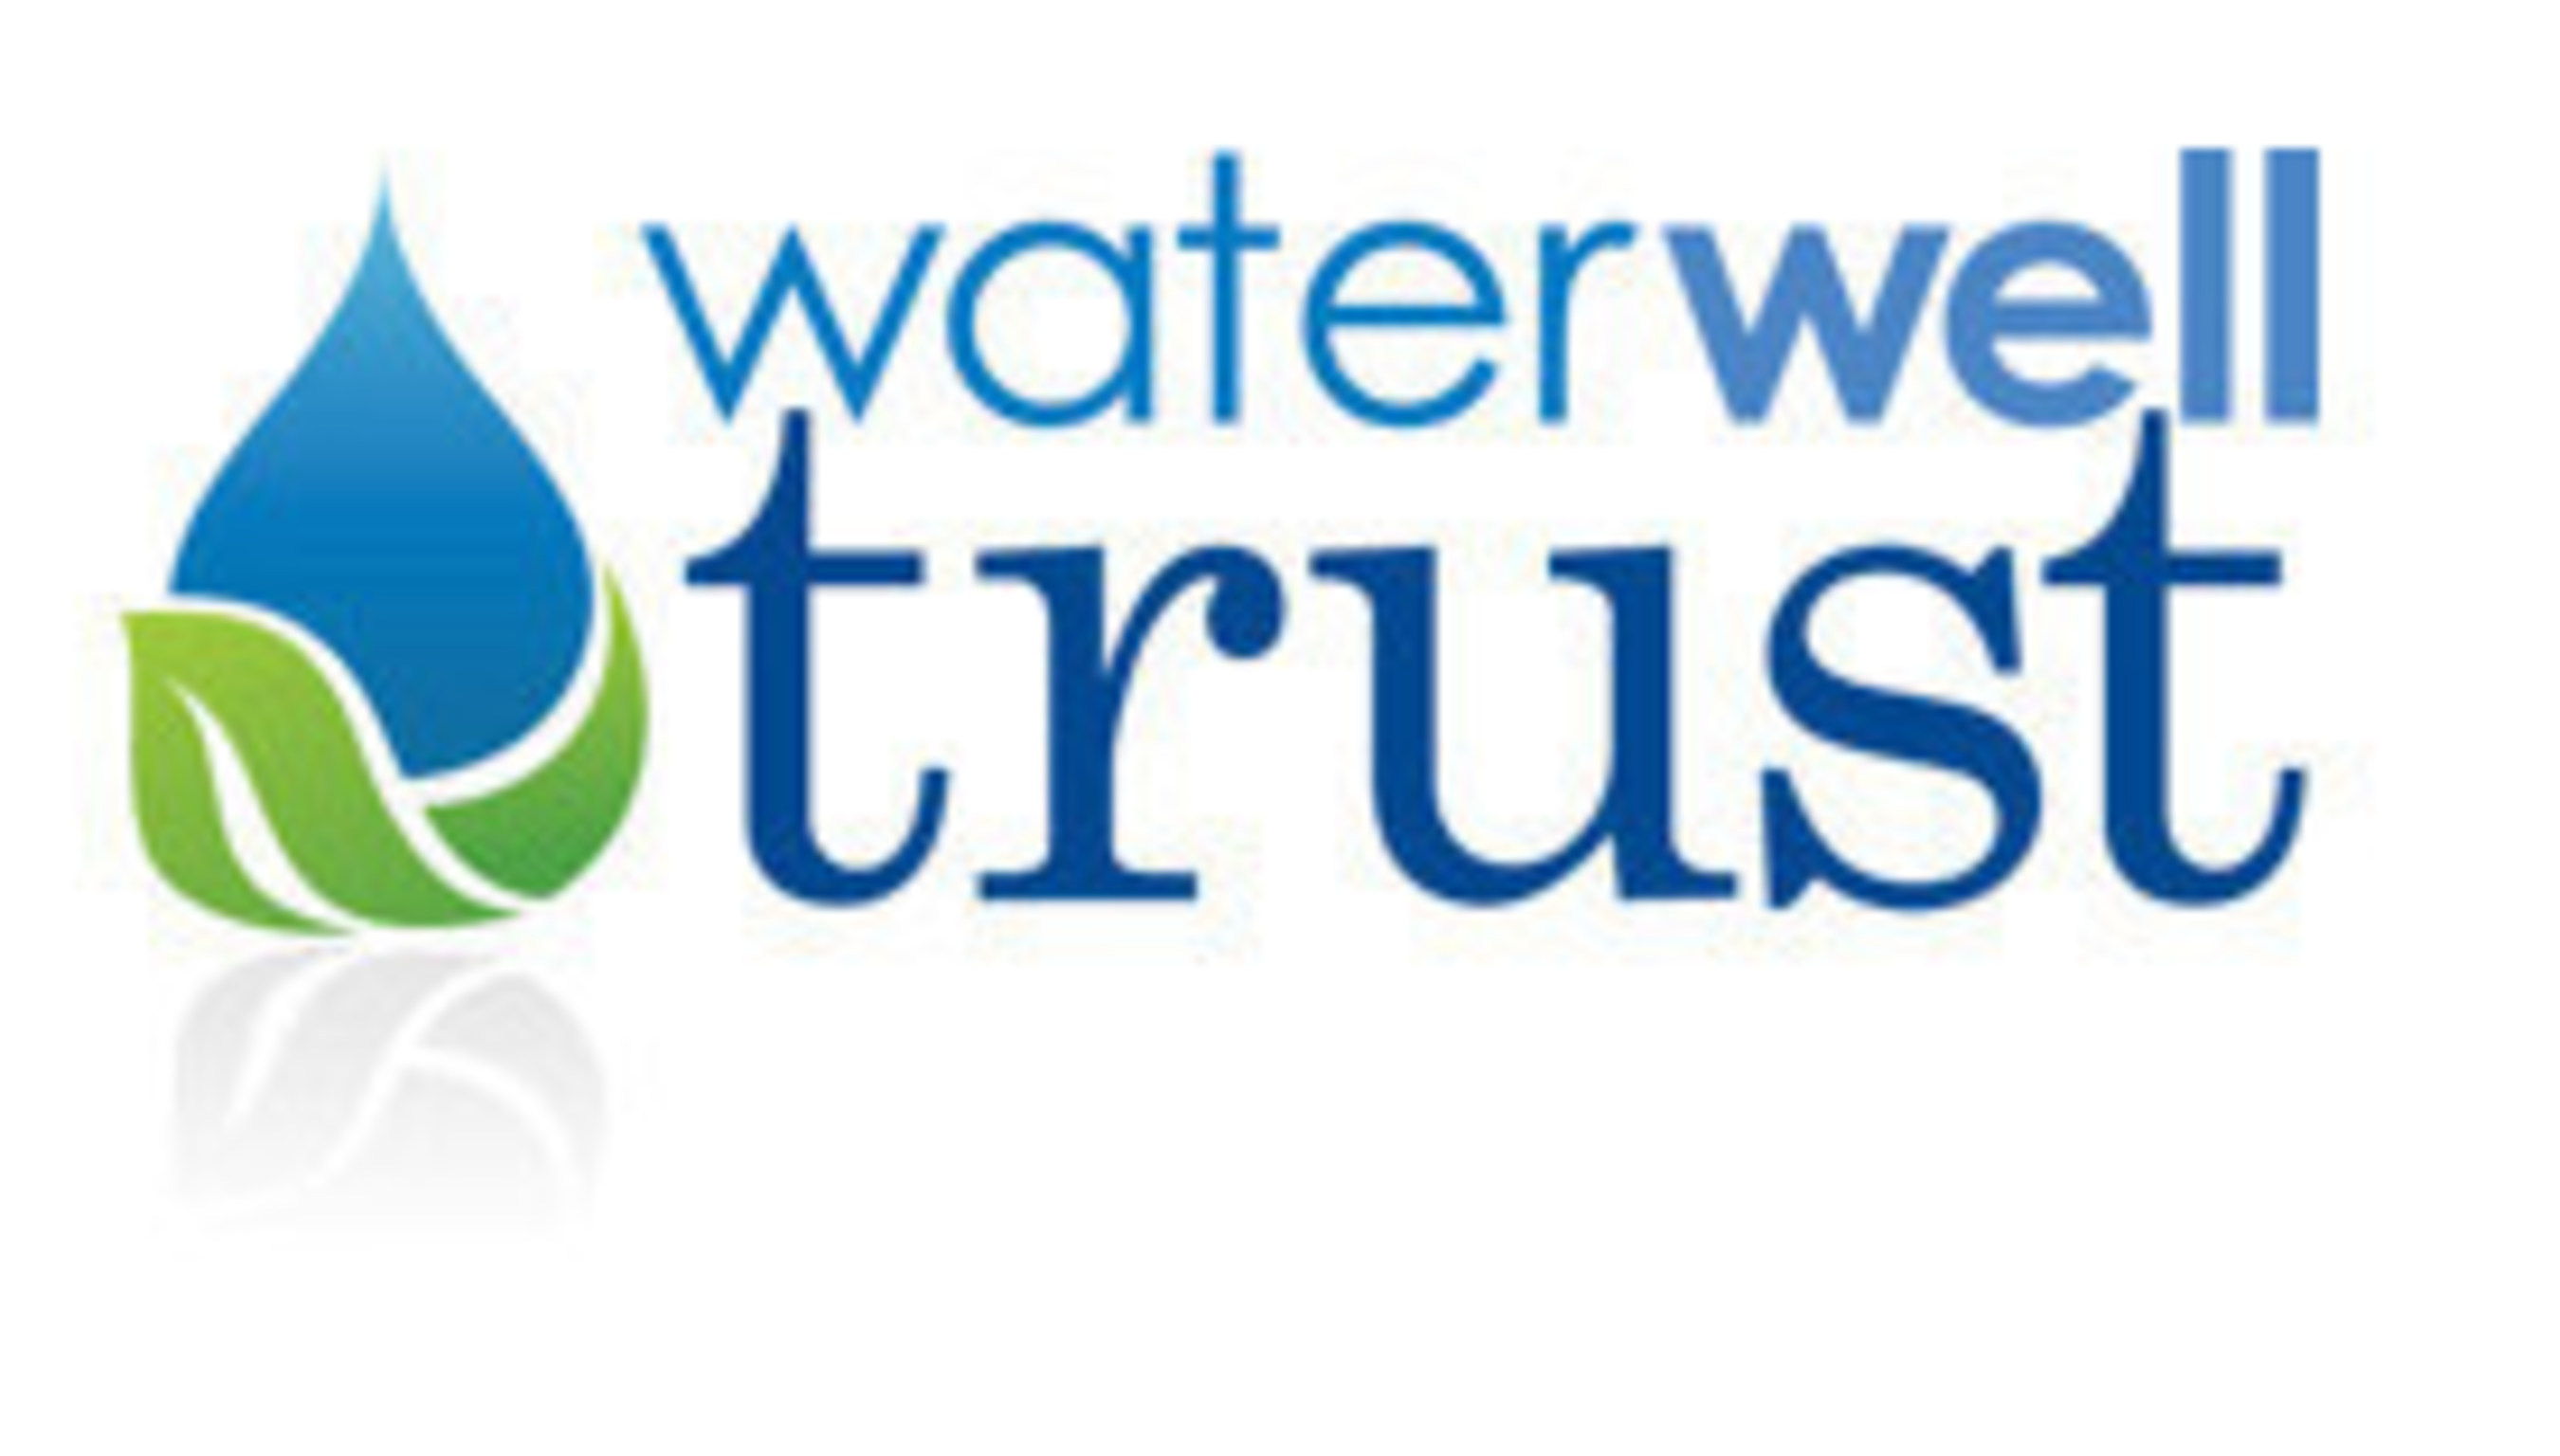 The Water Well Trust is the only national nonprofit helping low income Americans get access to a clean, safe water supply.